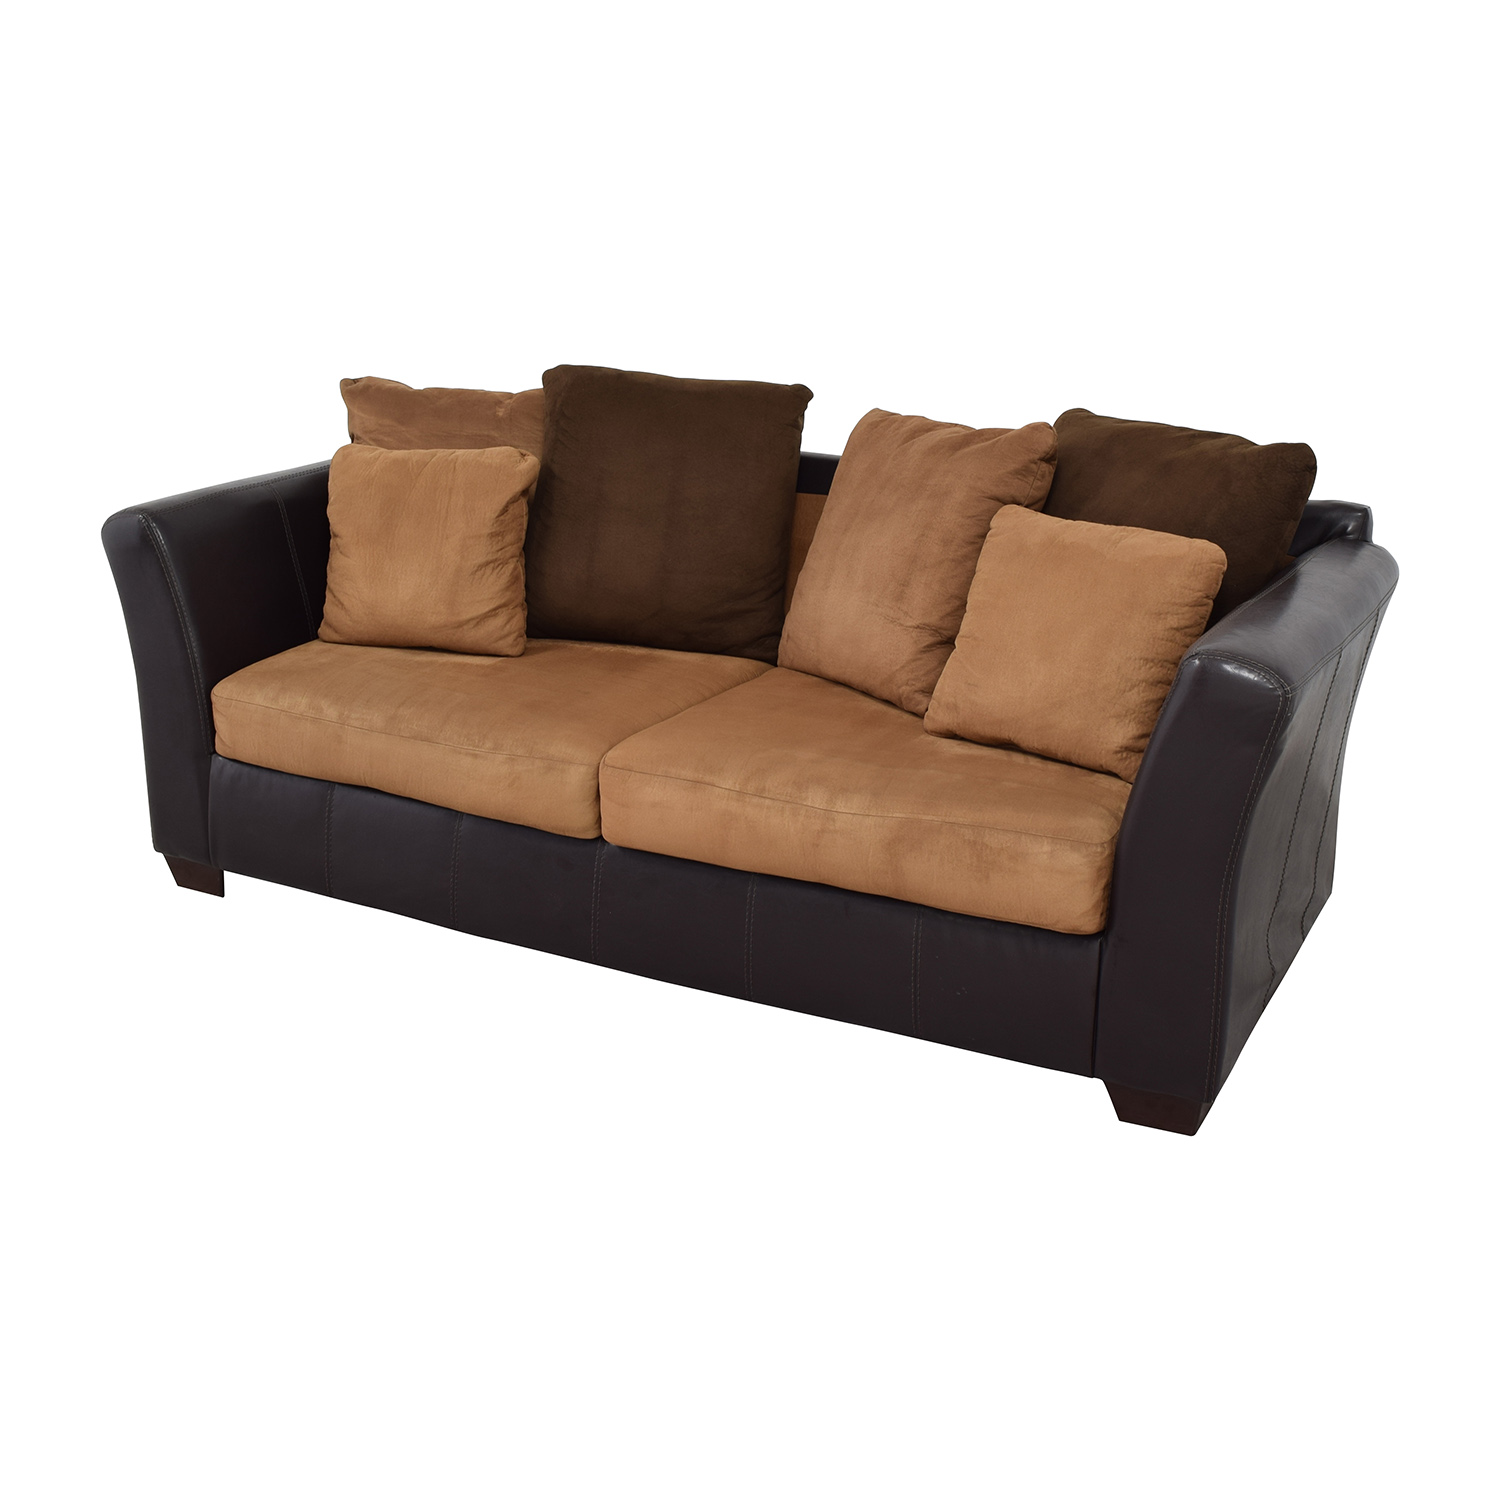 43 Off Ashley Furniture Ashley Furniture Sofa With